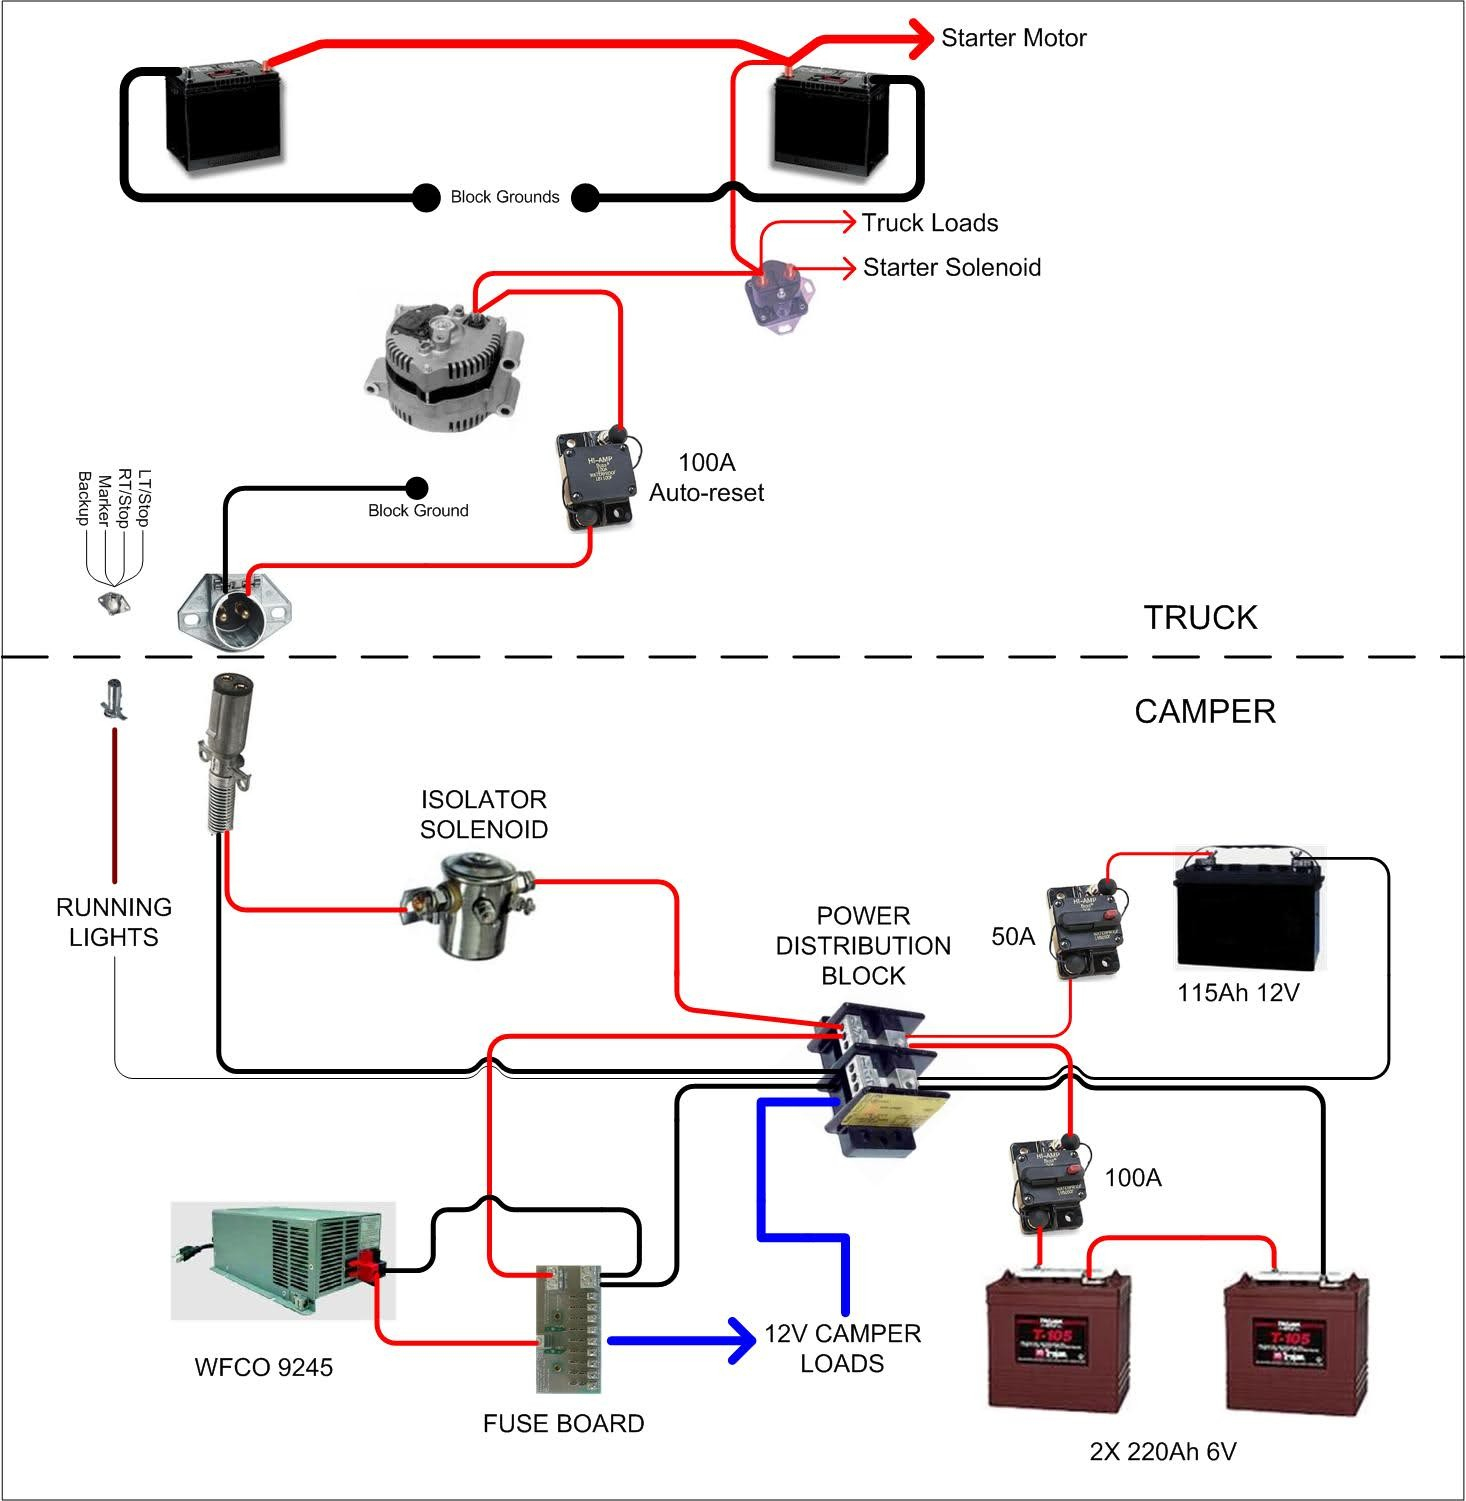 Swell Wells Cargo Trailer Wiring Diagram Together With Electric Winch Wiring Cloud Hisonuggs Outletorg